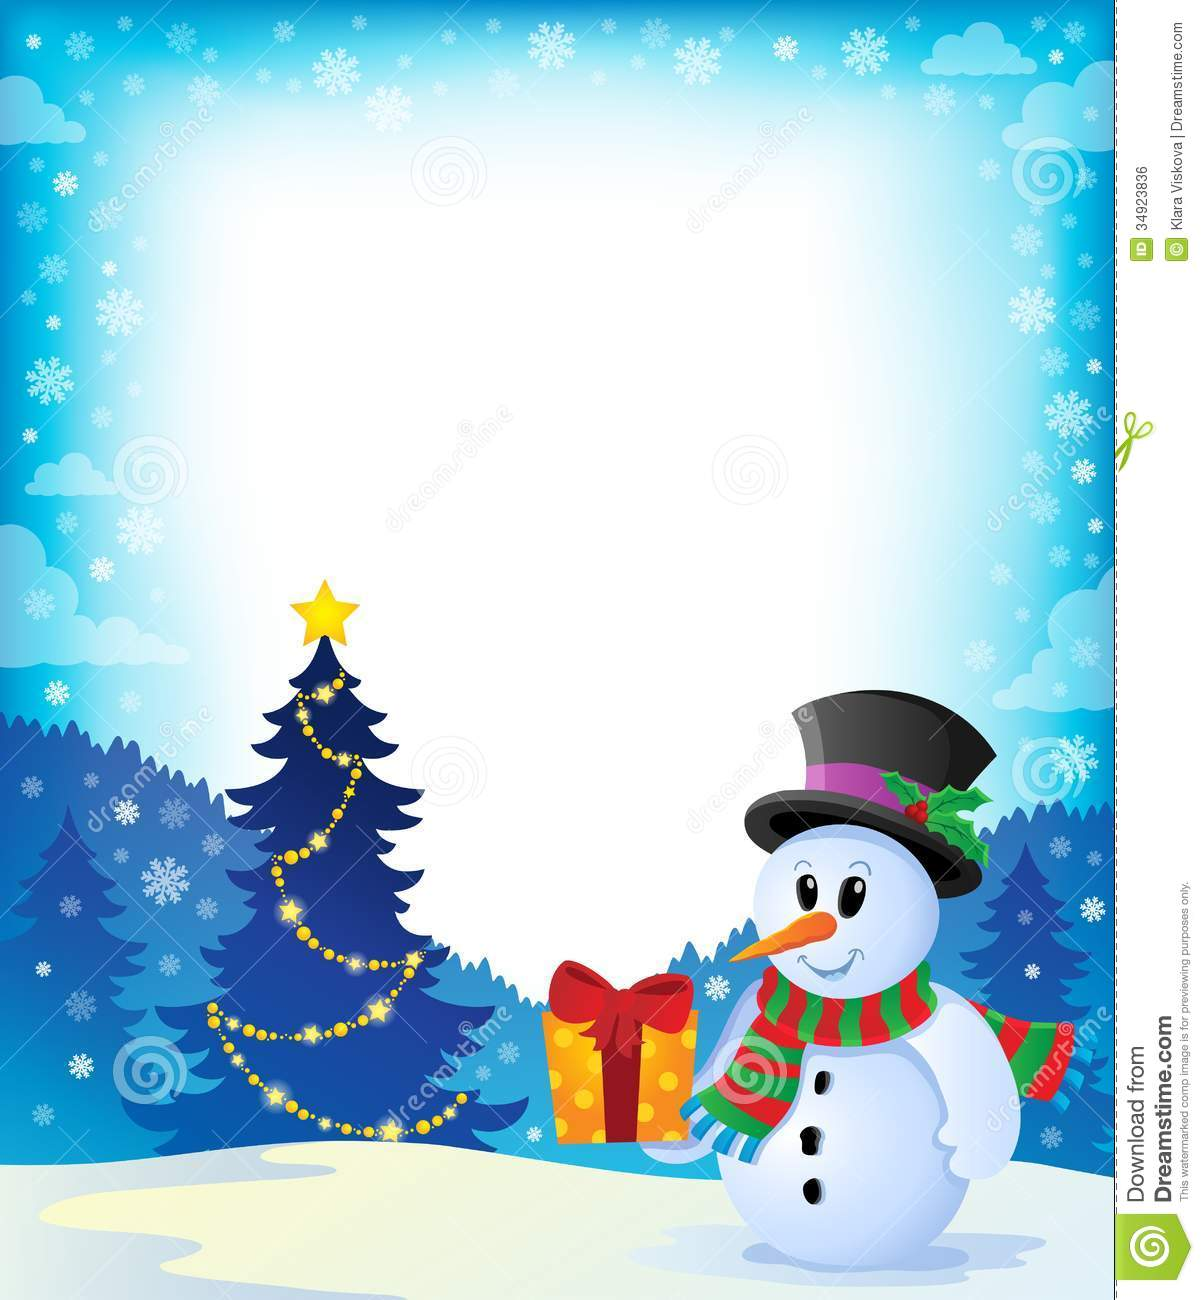 Christmas Snowman Theme Image 2 Stock Vector